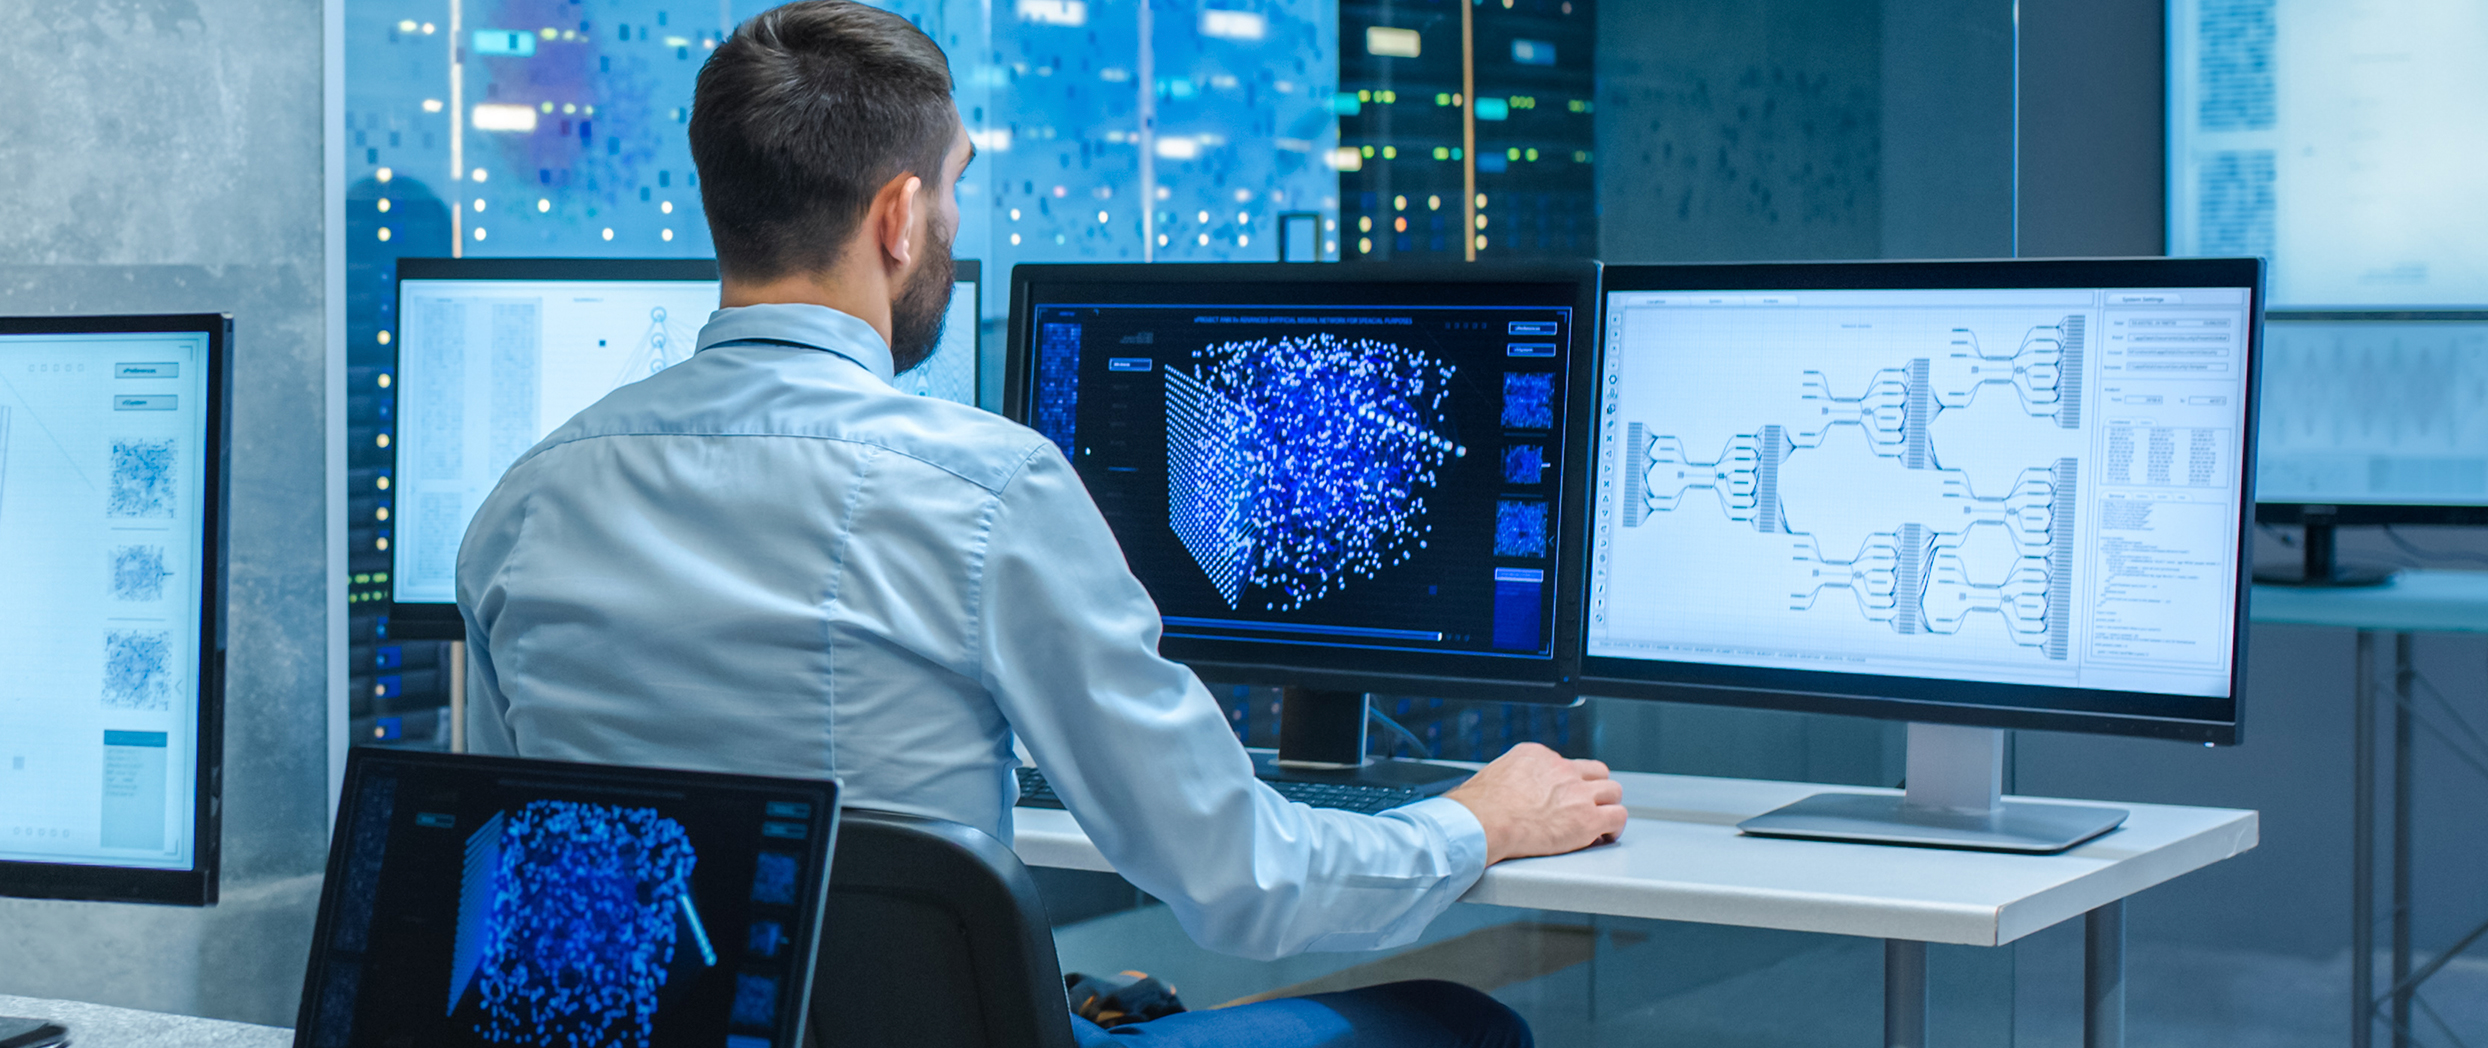 XDR, the new approach to incident detection and response